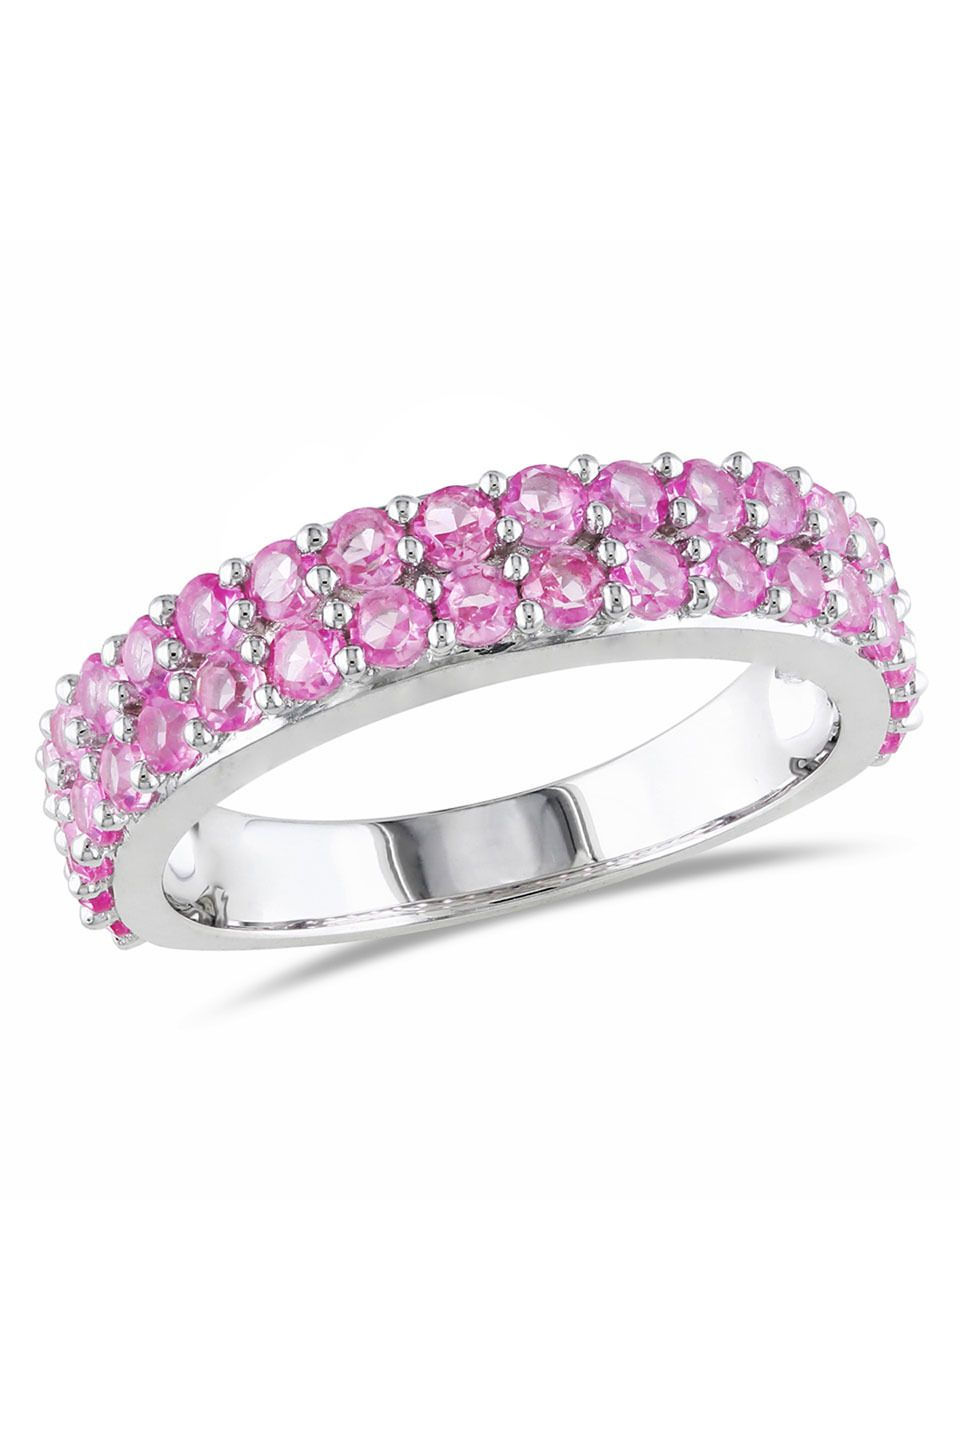 Pink Sapphire Ring In Silver.